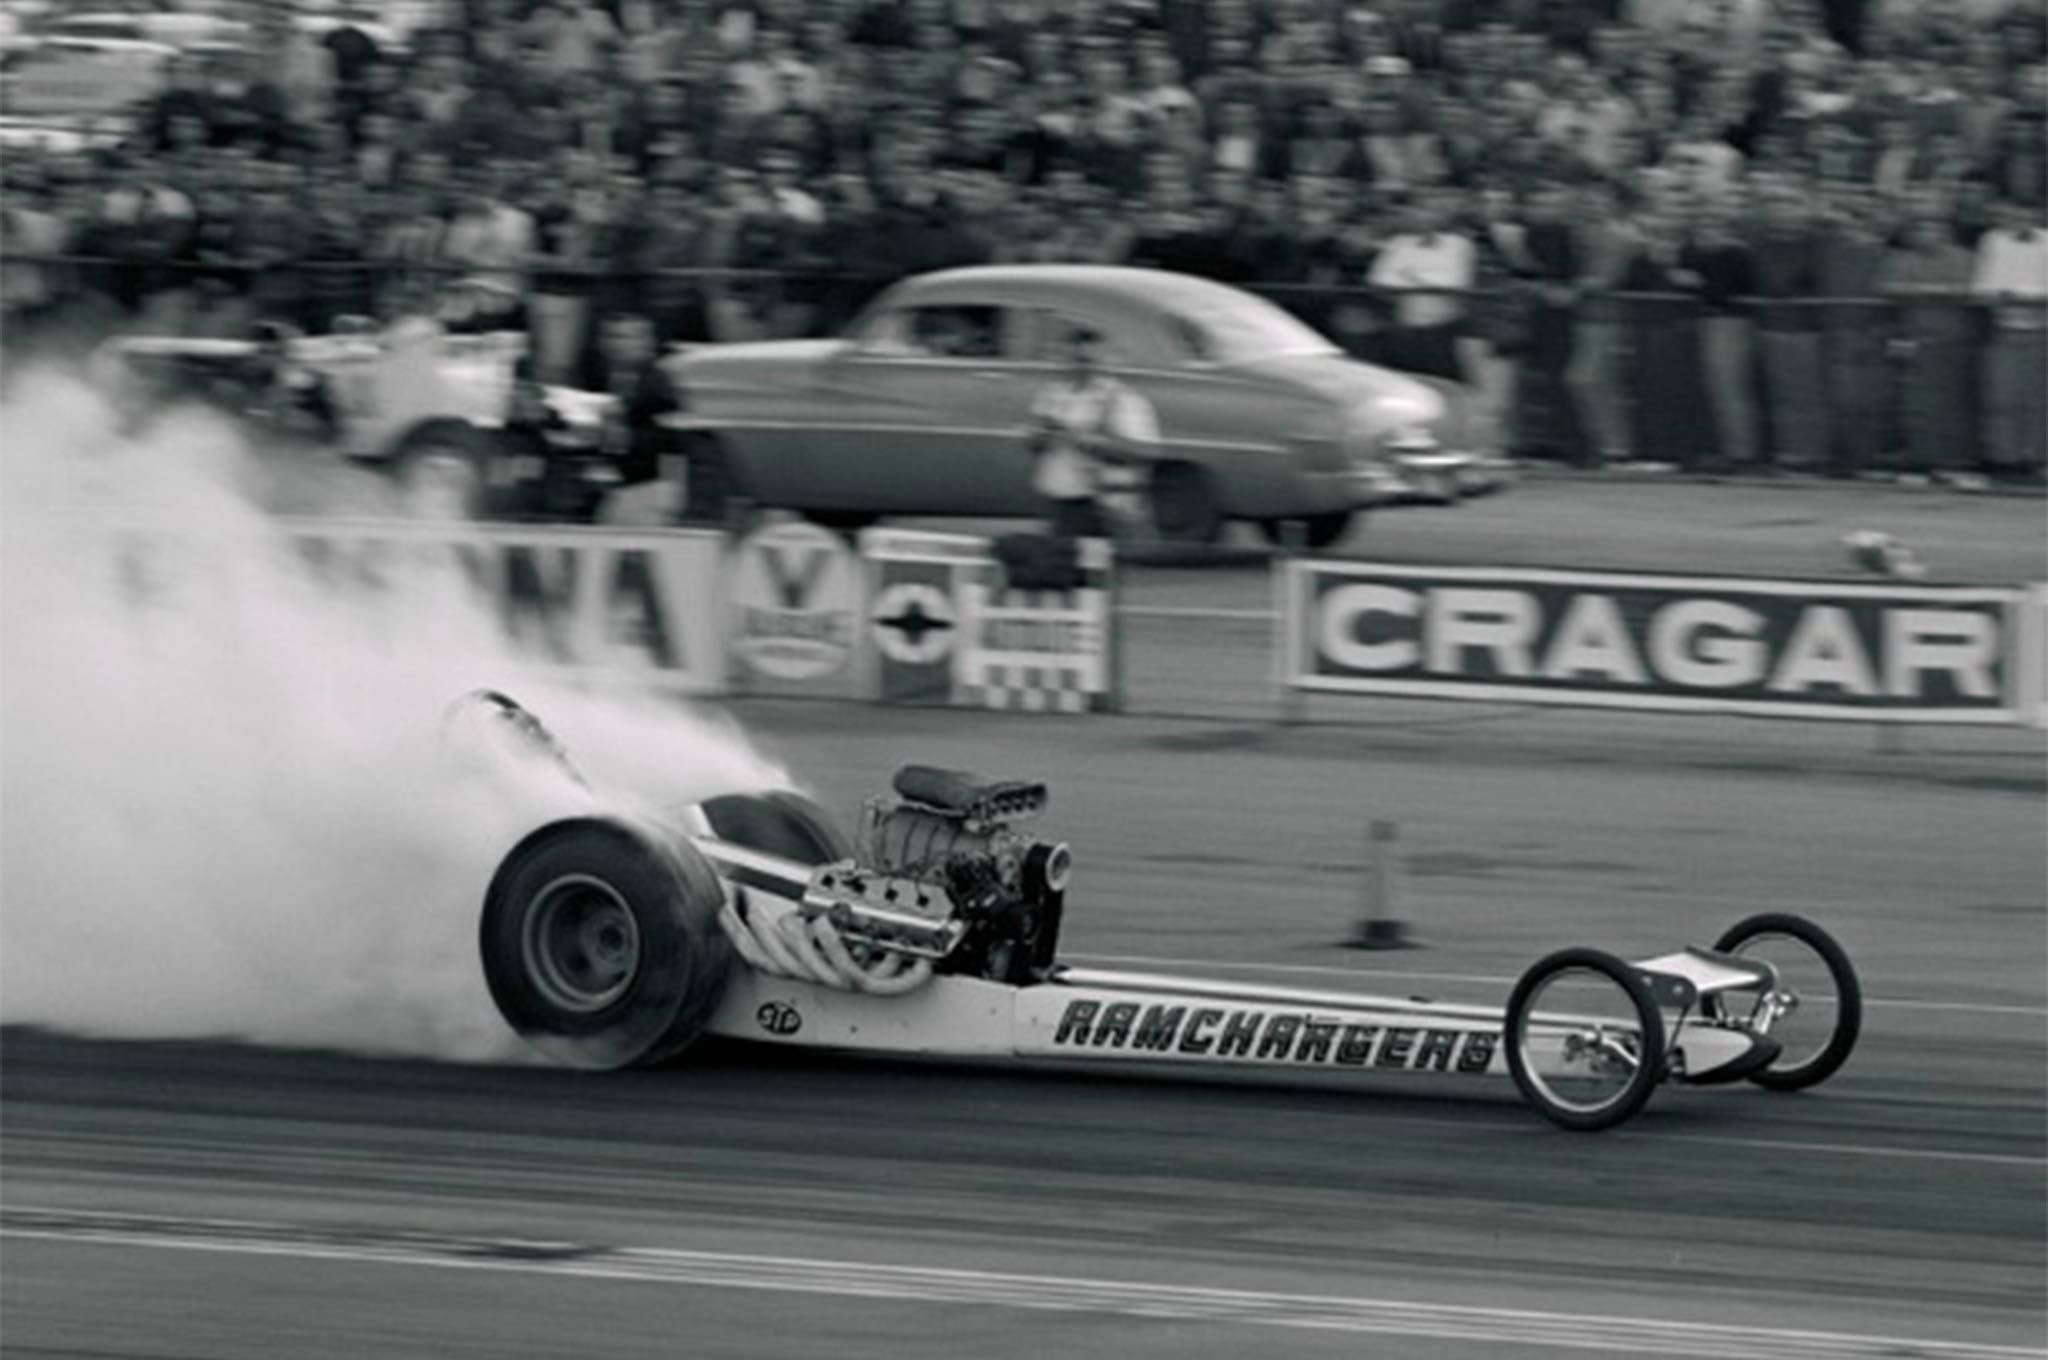 The Top Fuel car the Ramchargers team campaigned was a feared bogey. Leroy Goldstein would win the 1969 AHRA World title with it just before the team, now on its own, returned to the Funny Car ranks.